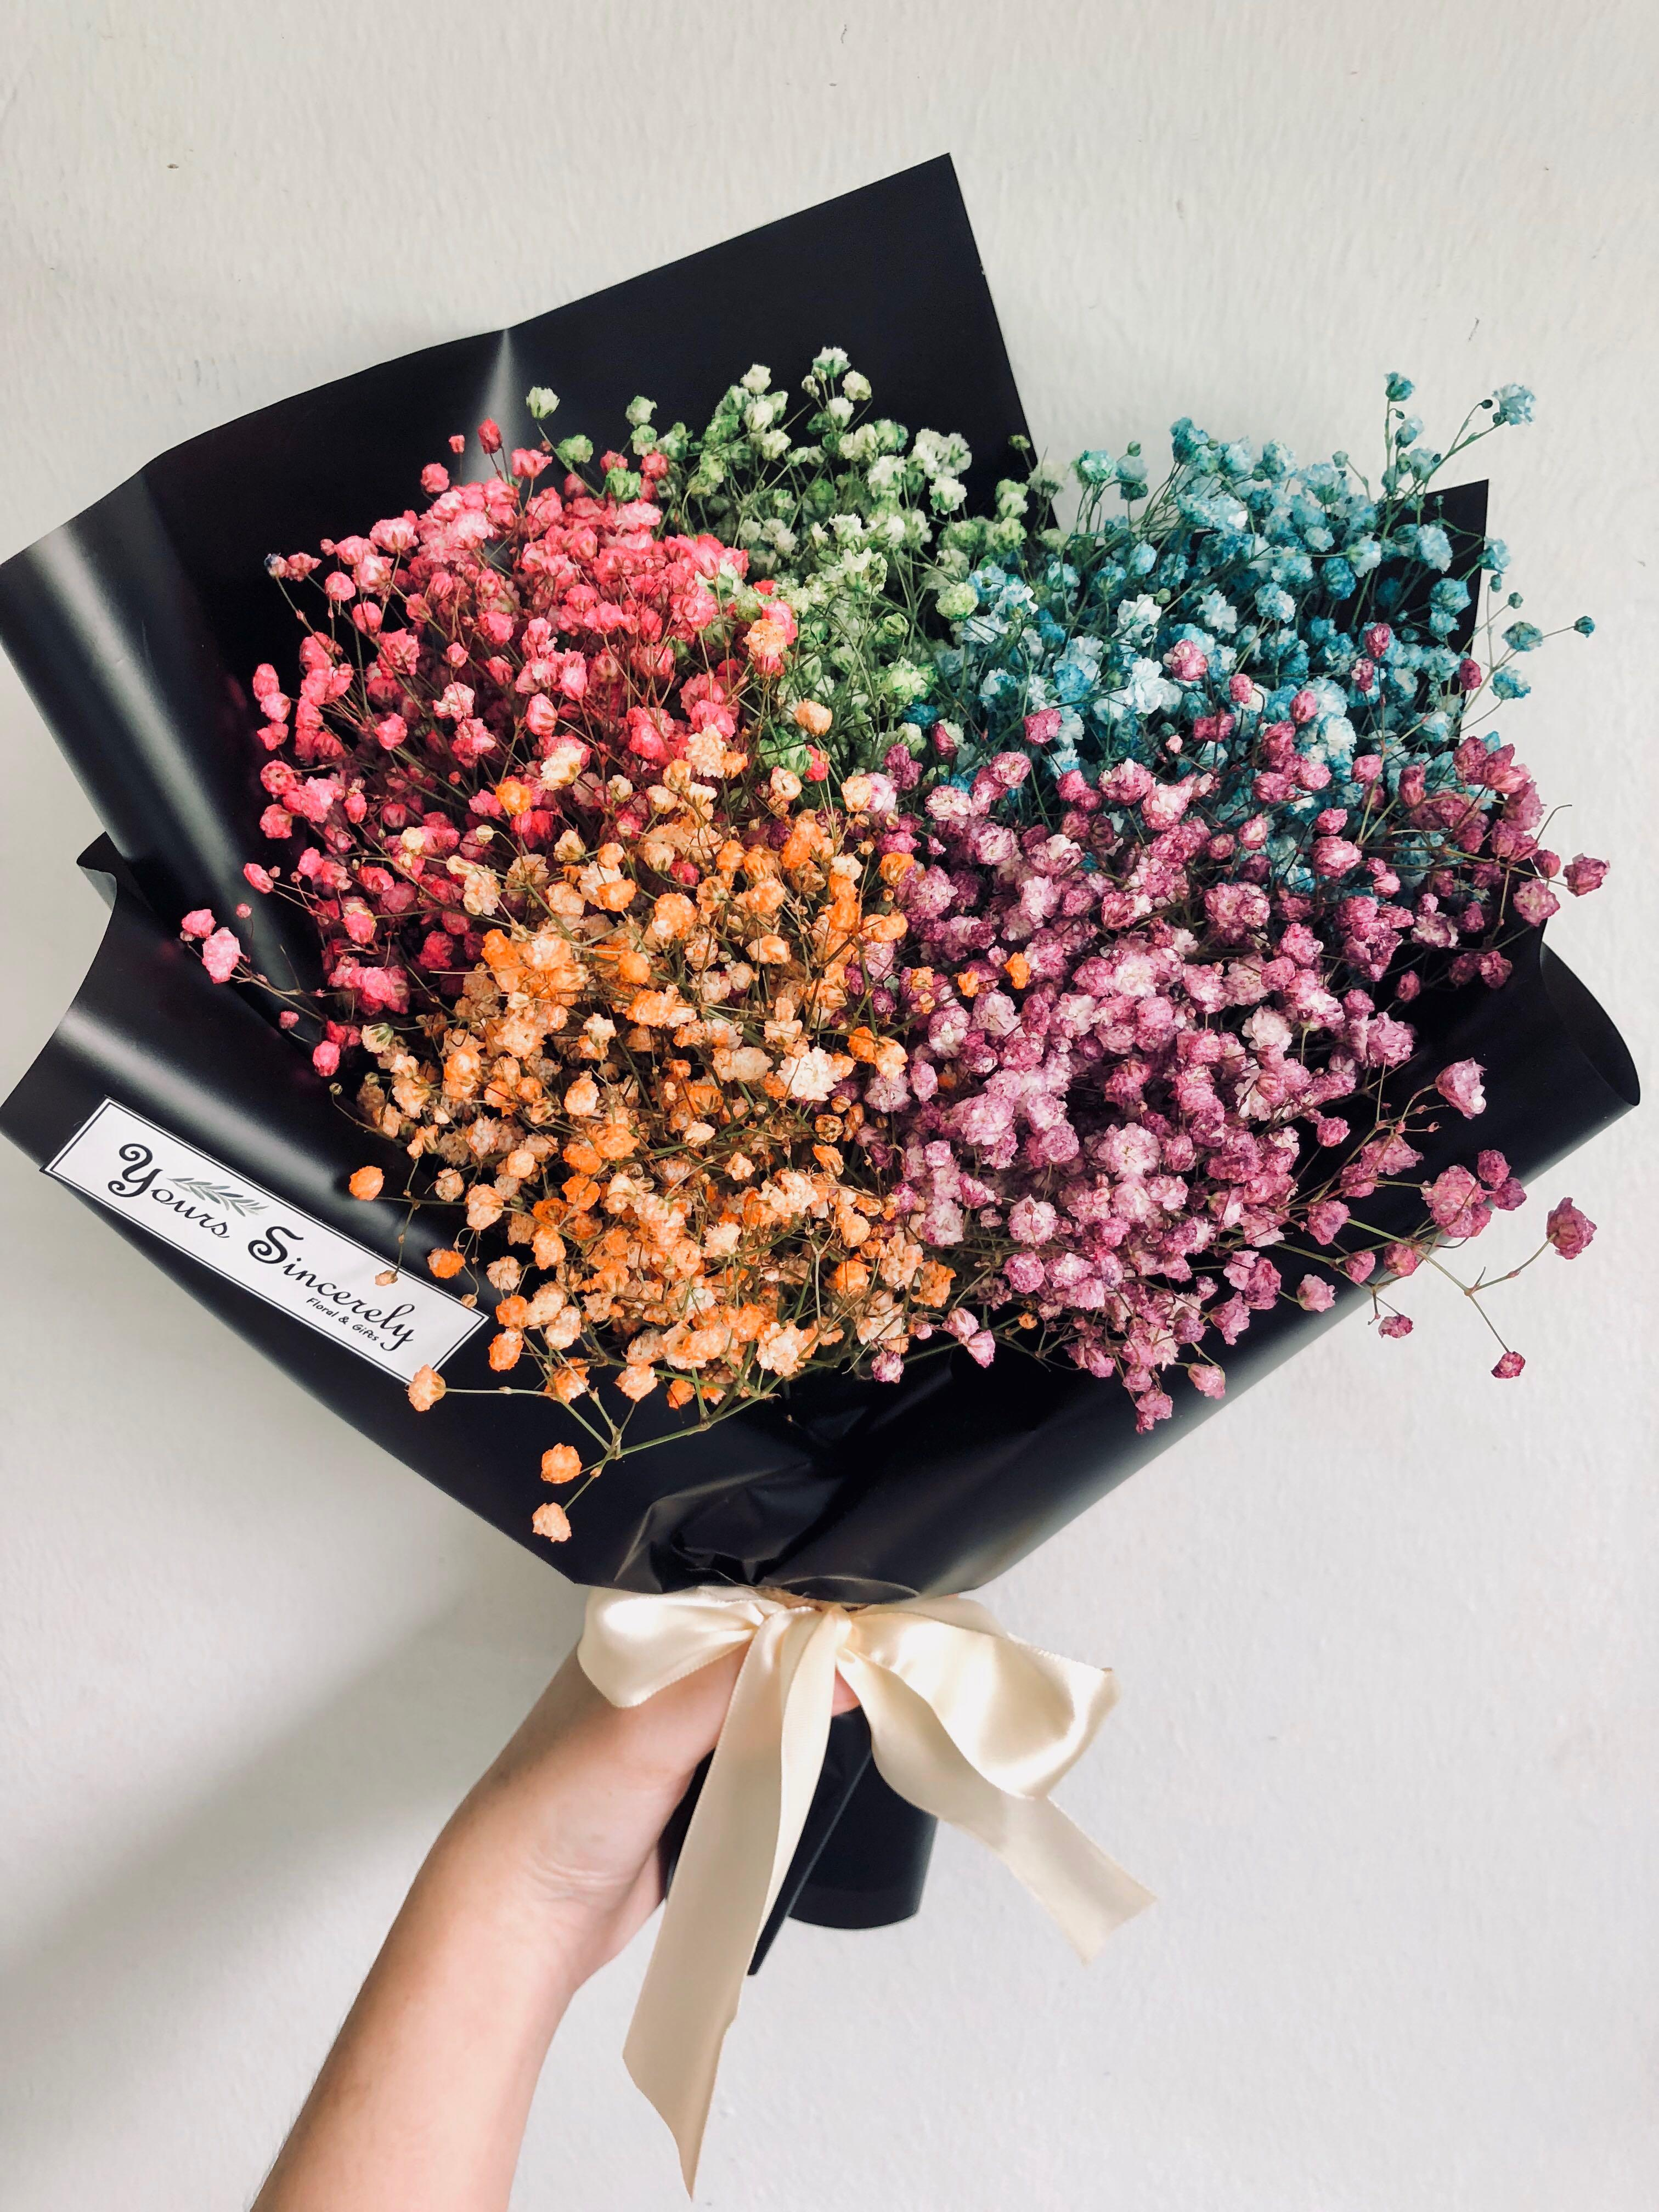 Rainbow Bouquet Baby S Breath Bouquet Gardening Flowers Bouquets On Carousell